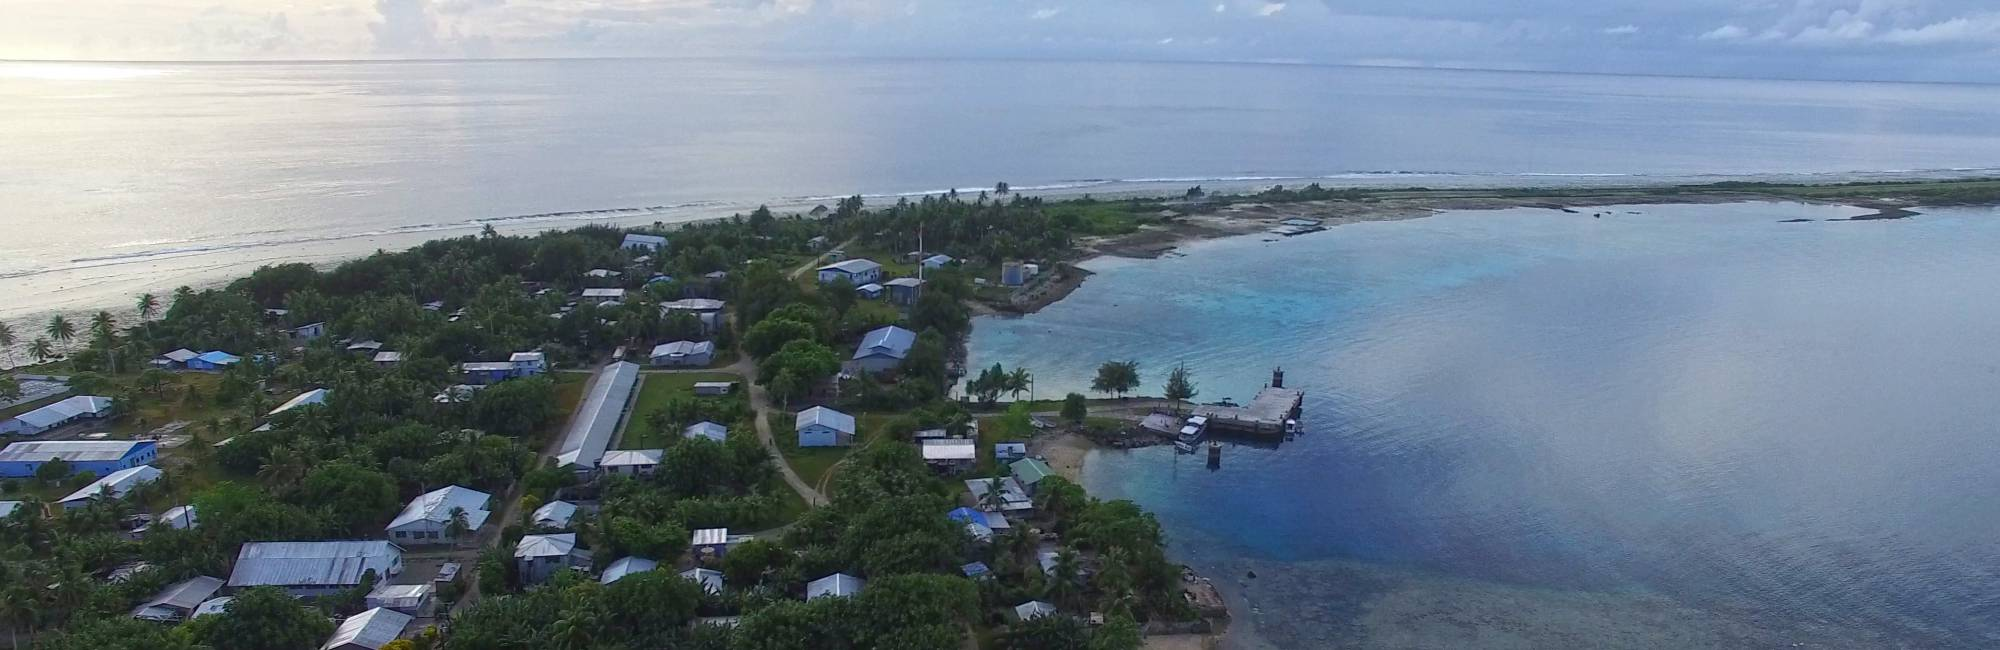 Aerial photo of the town of Jabor on Jaluit Atoll (169.5E, 6N), Republic of the Marshall Islands taken by a drone during our recent fieldwork in the western tropical Pacific.